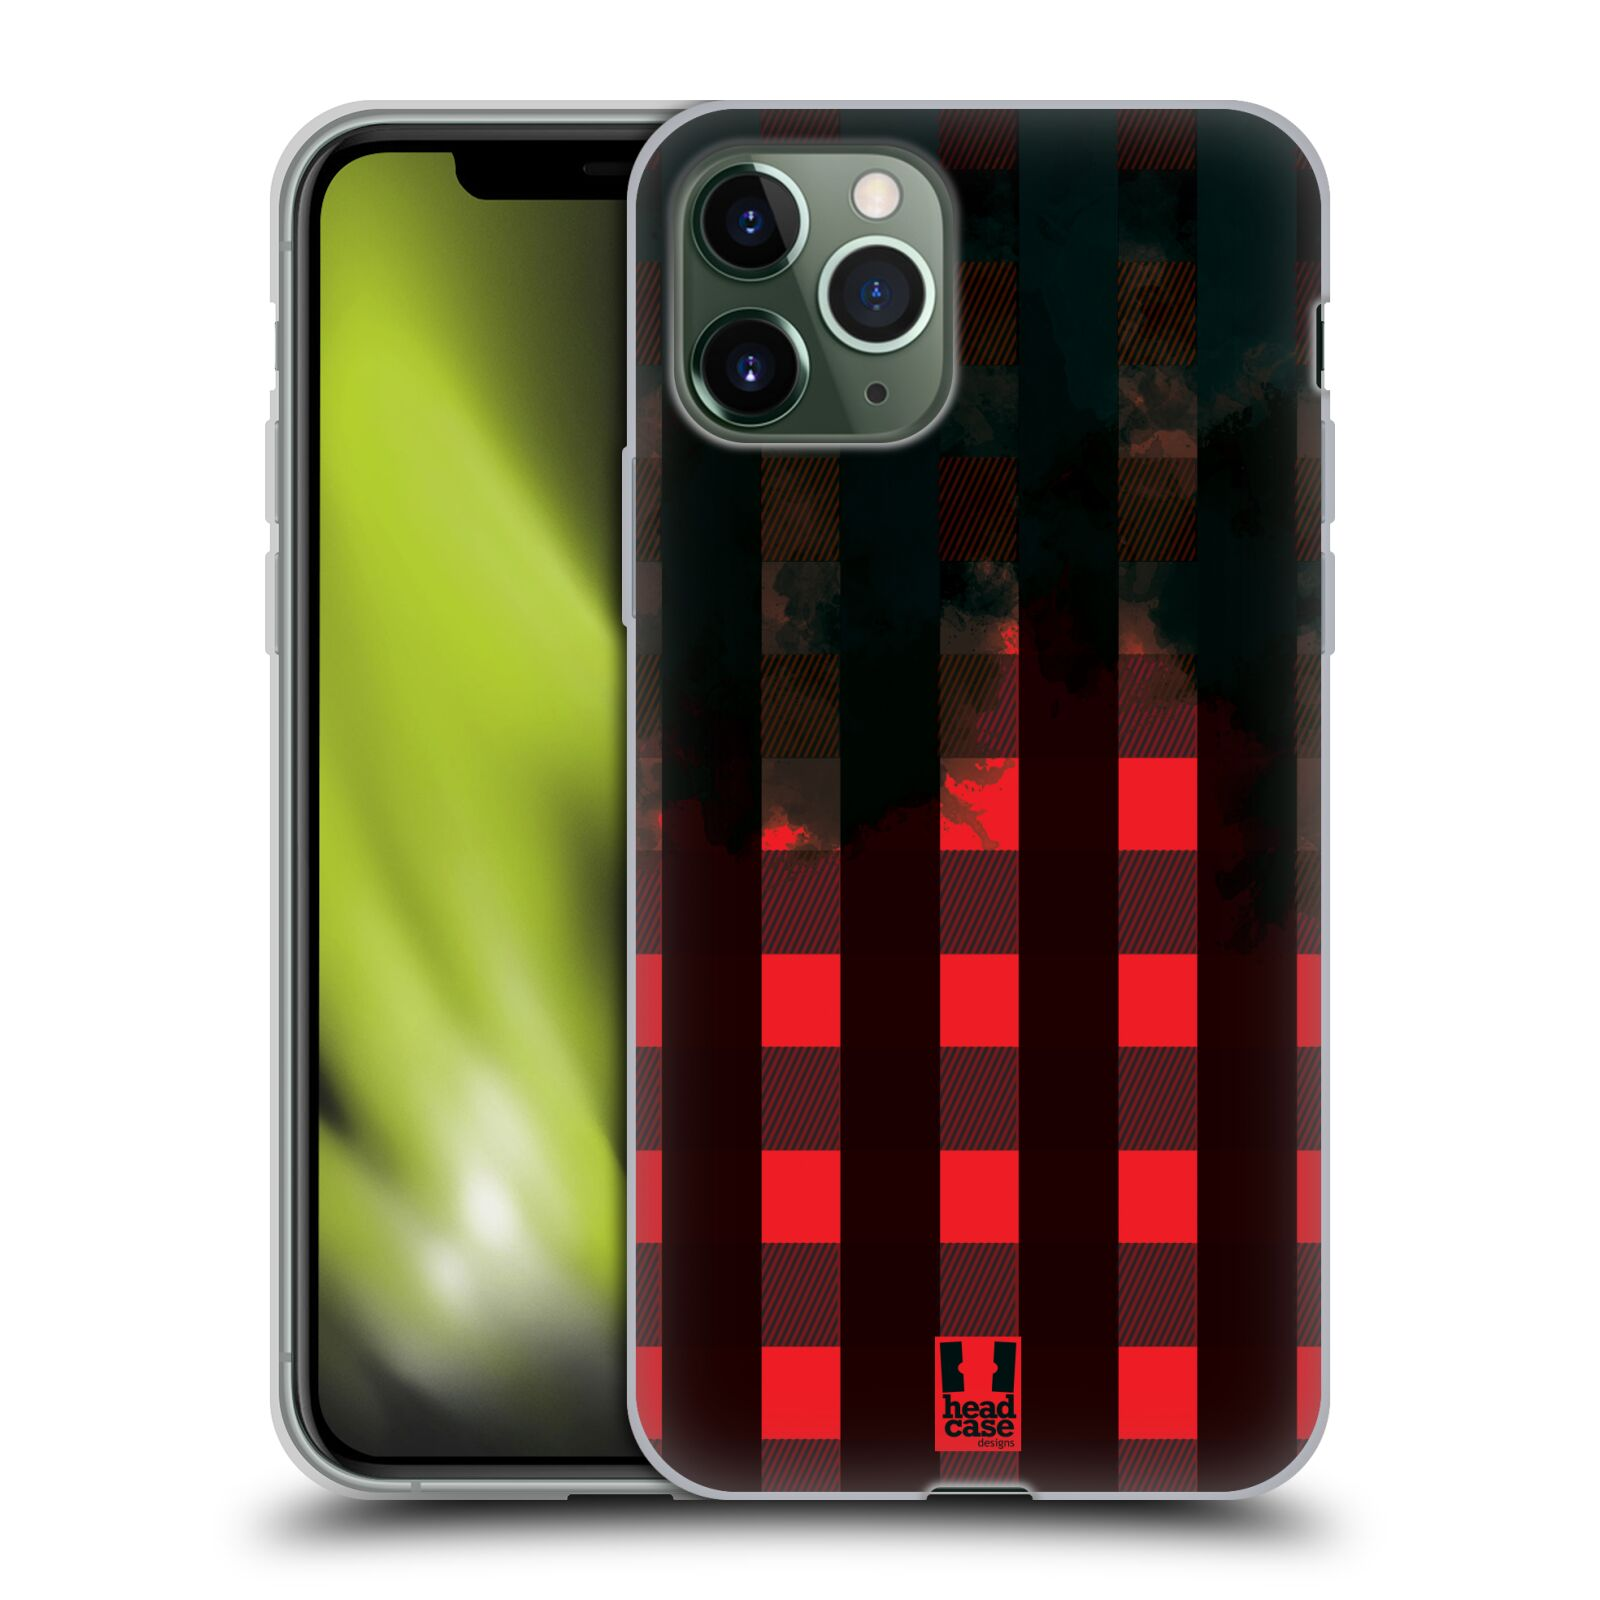 kryt na iphone 6 s | Silikonové pouzdro na mobil Apple iPhone 11 Pro - Head Case - FLANEL RED BLACK